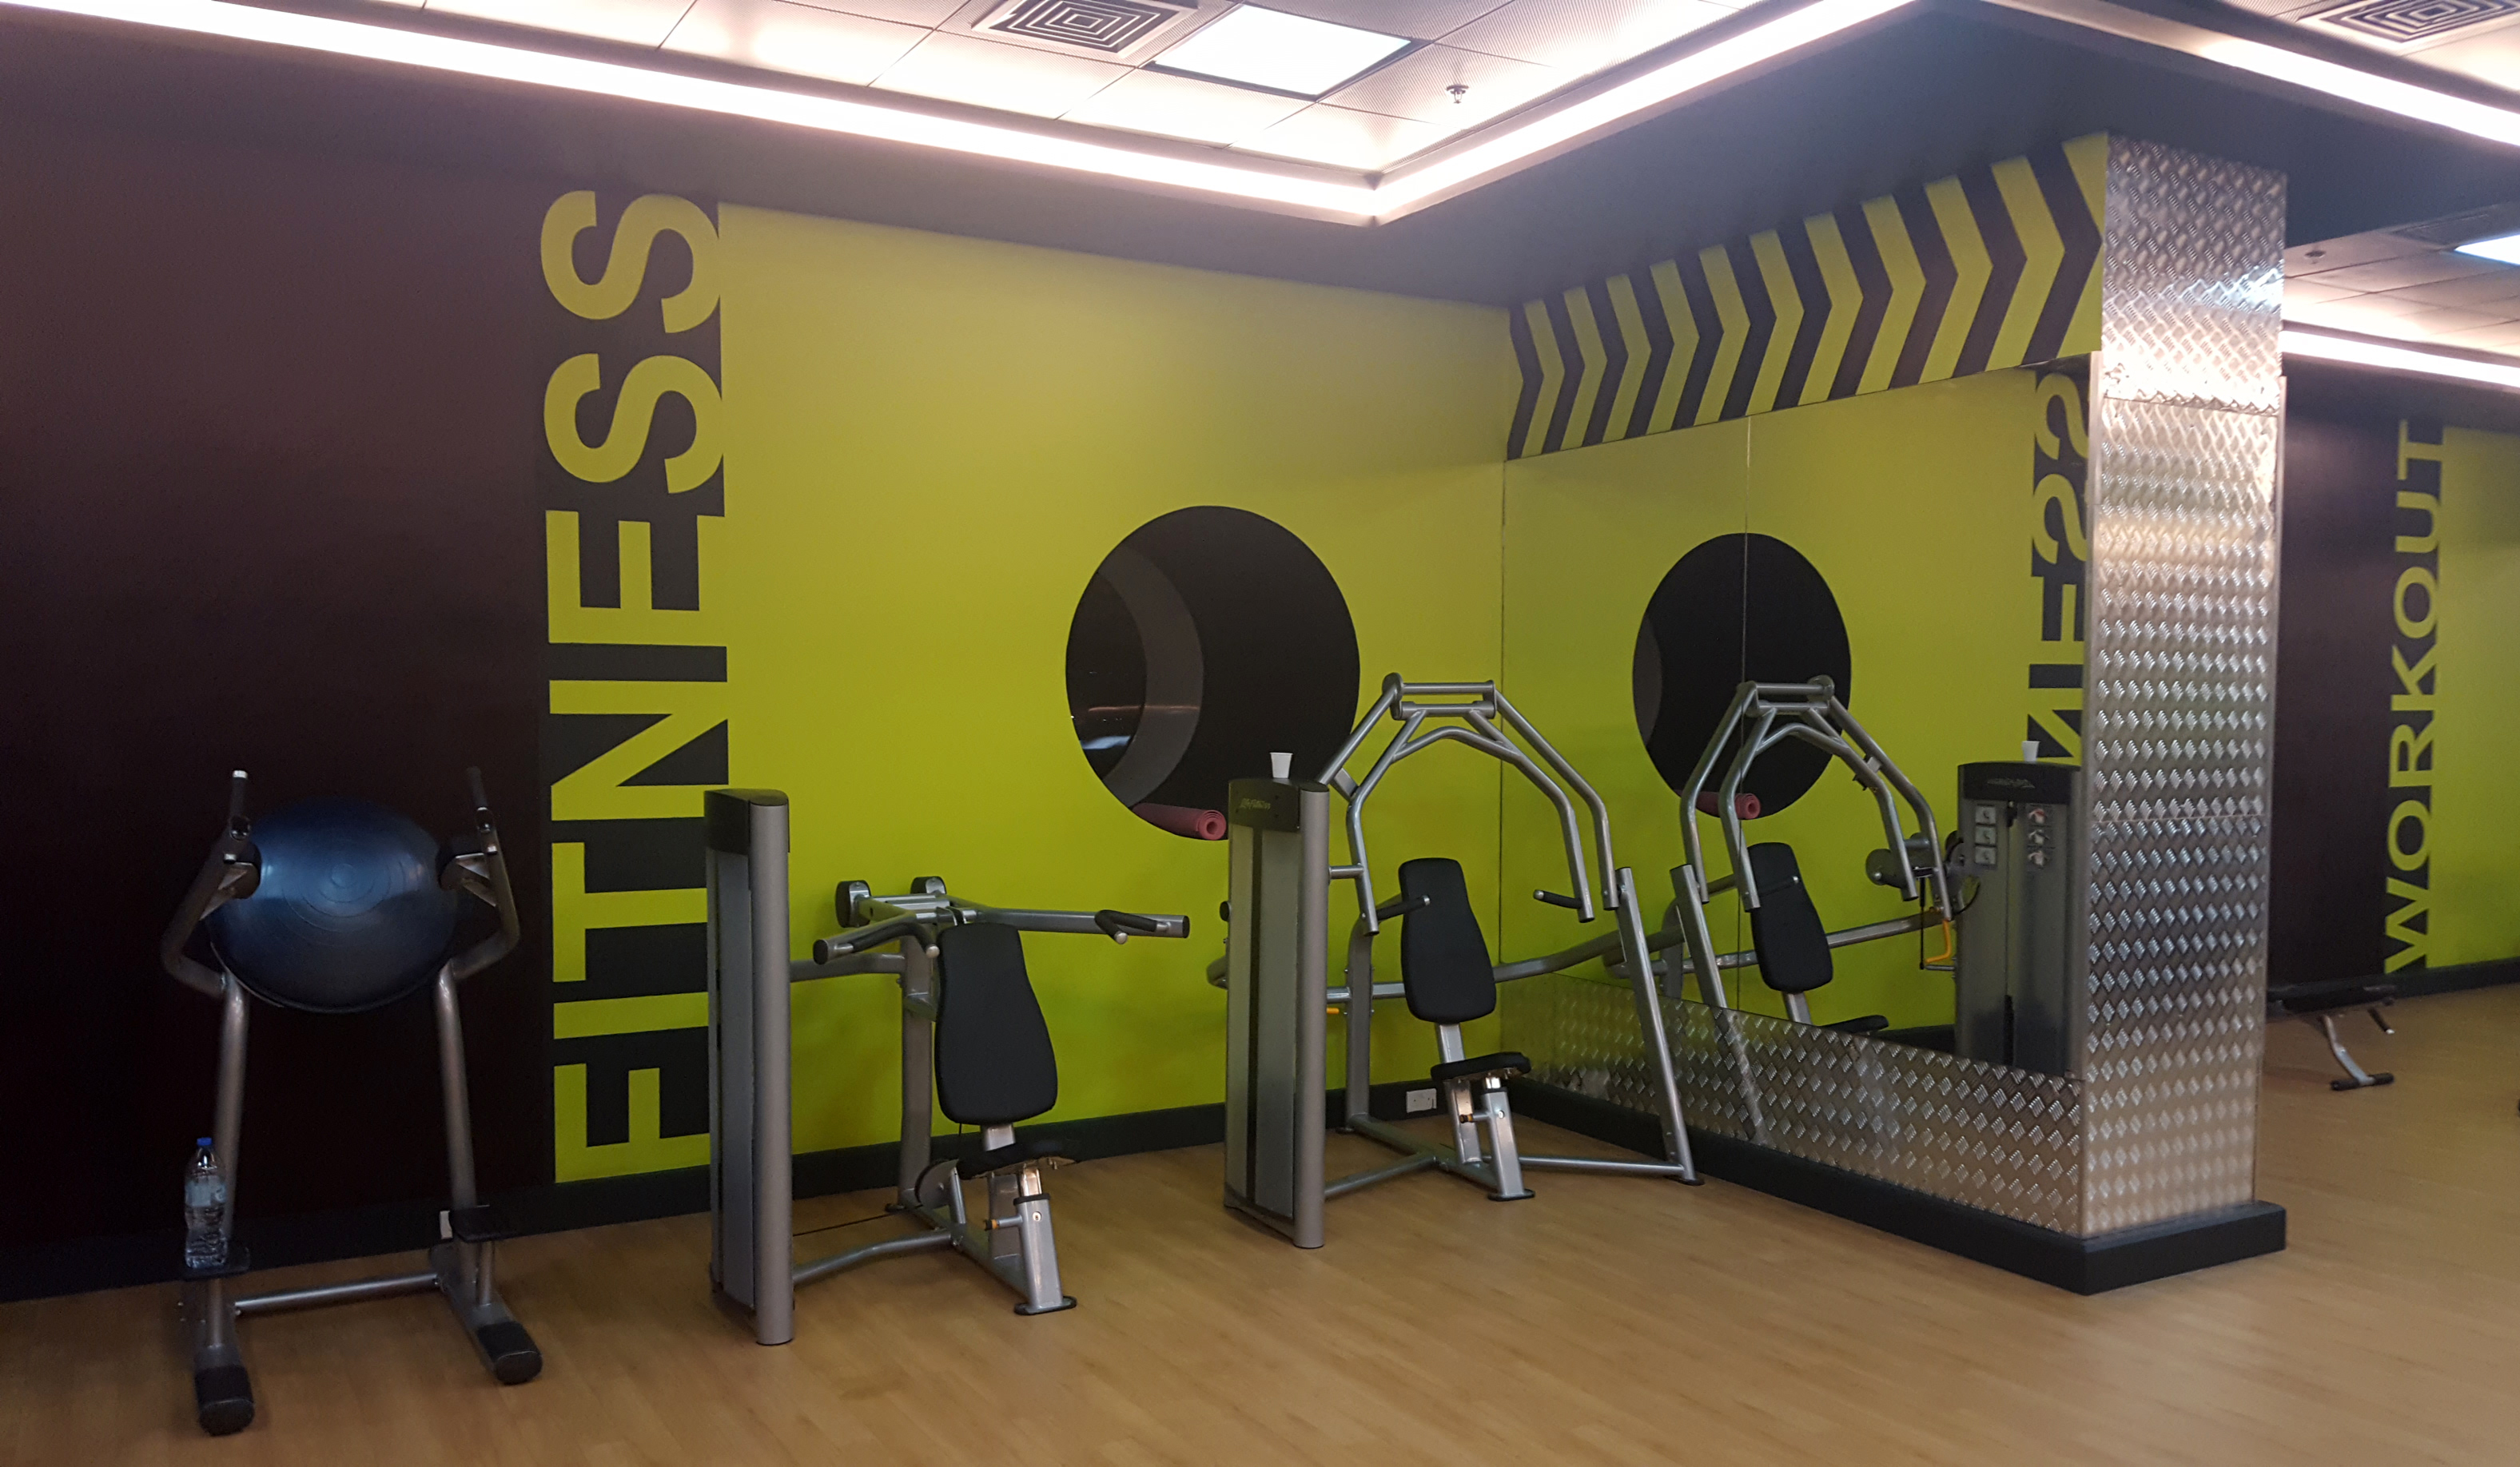 Dpm interior design gym fitness centre